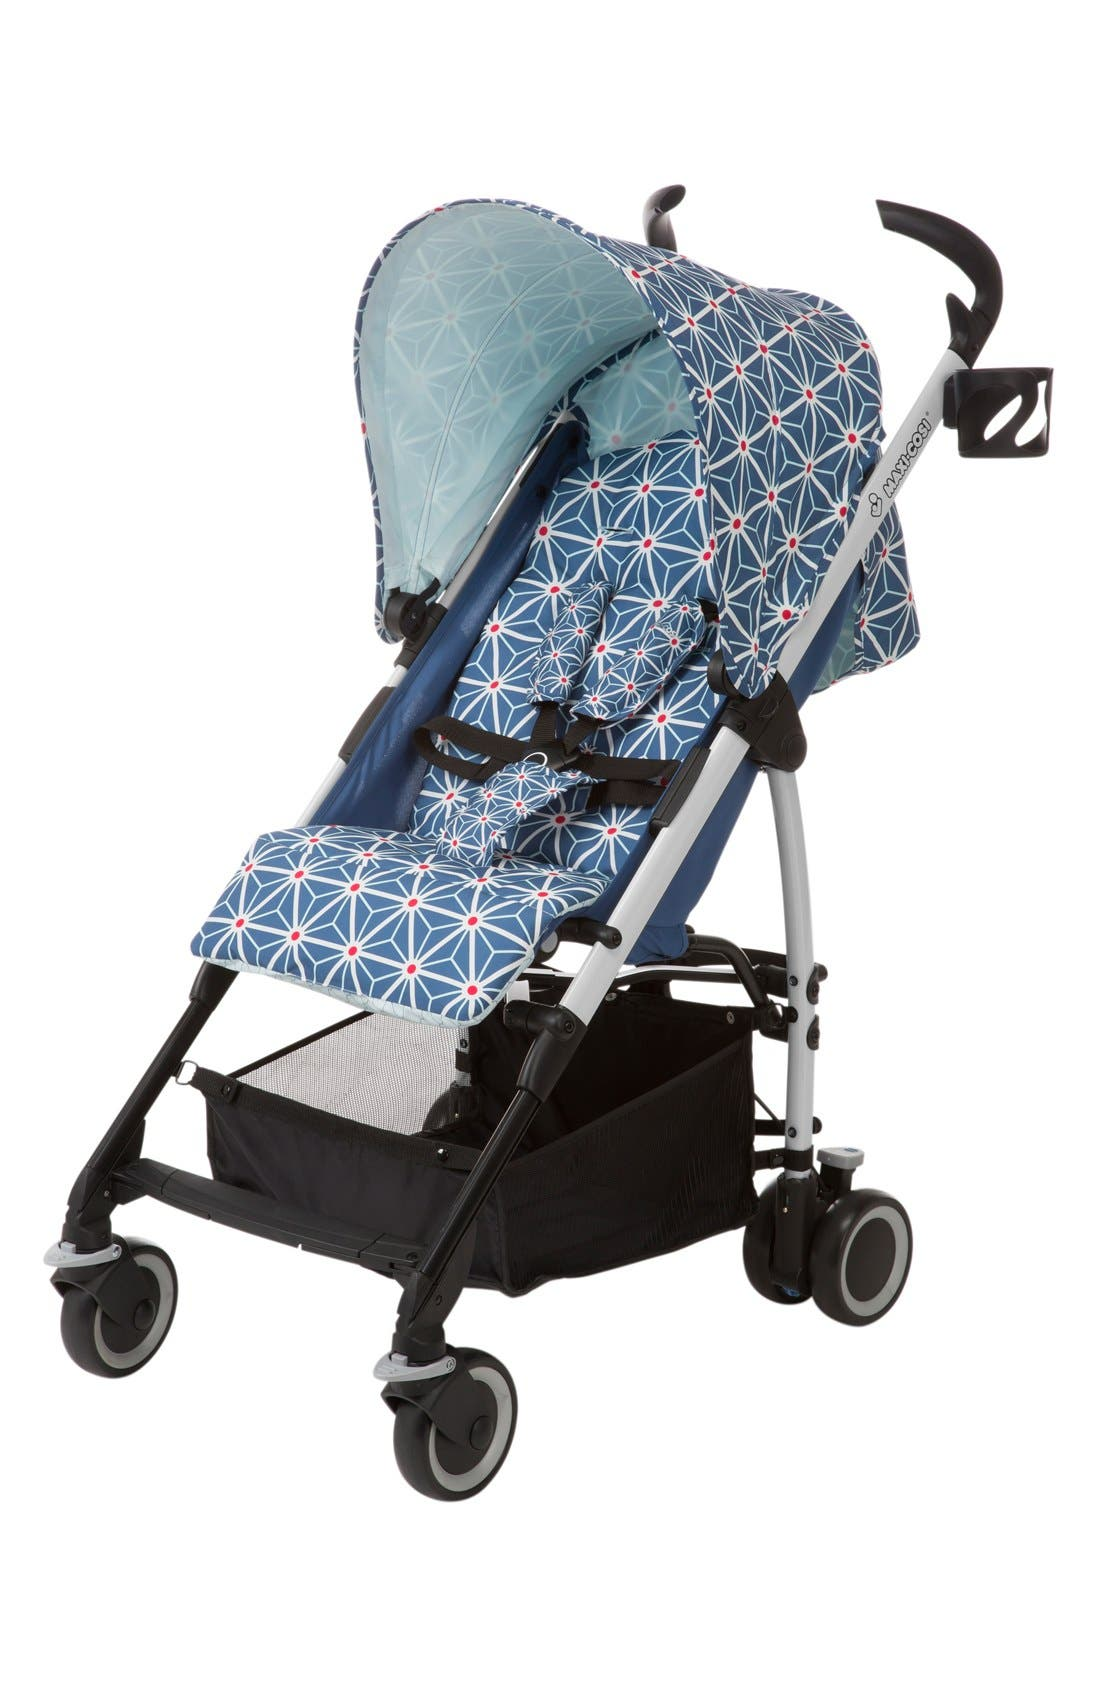 Alternate Image 1 Selected - Maxi-Cosi® Kaia Compact Fold Stroller (Nordstrom Exclusive)